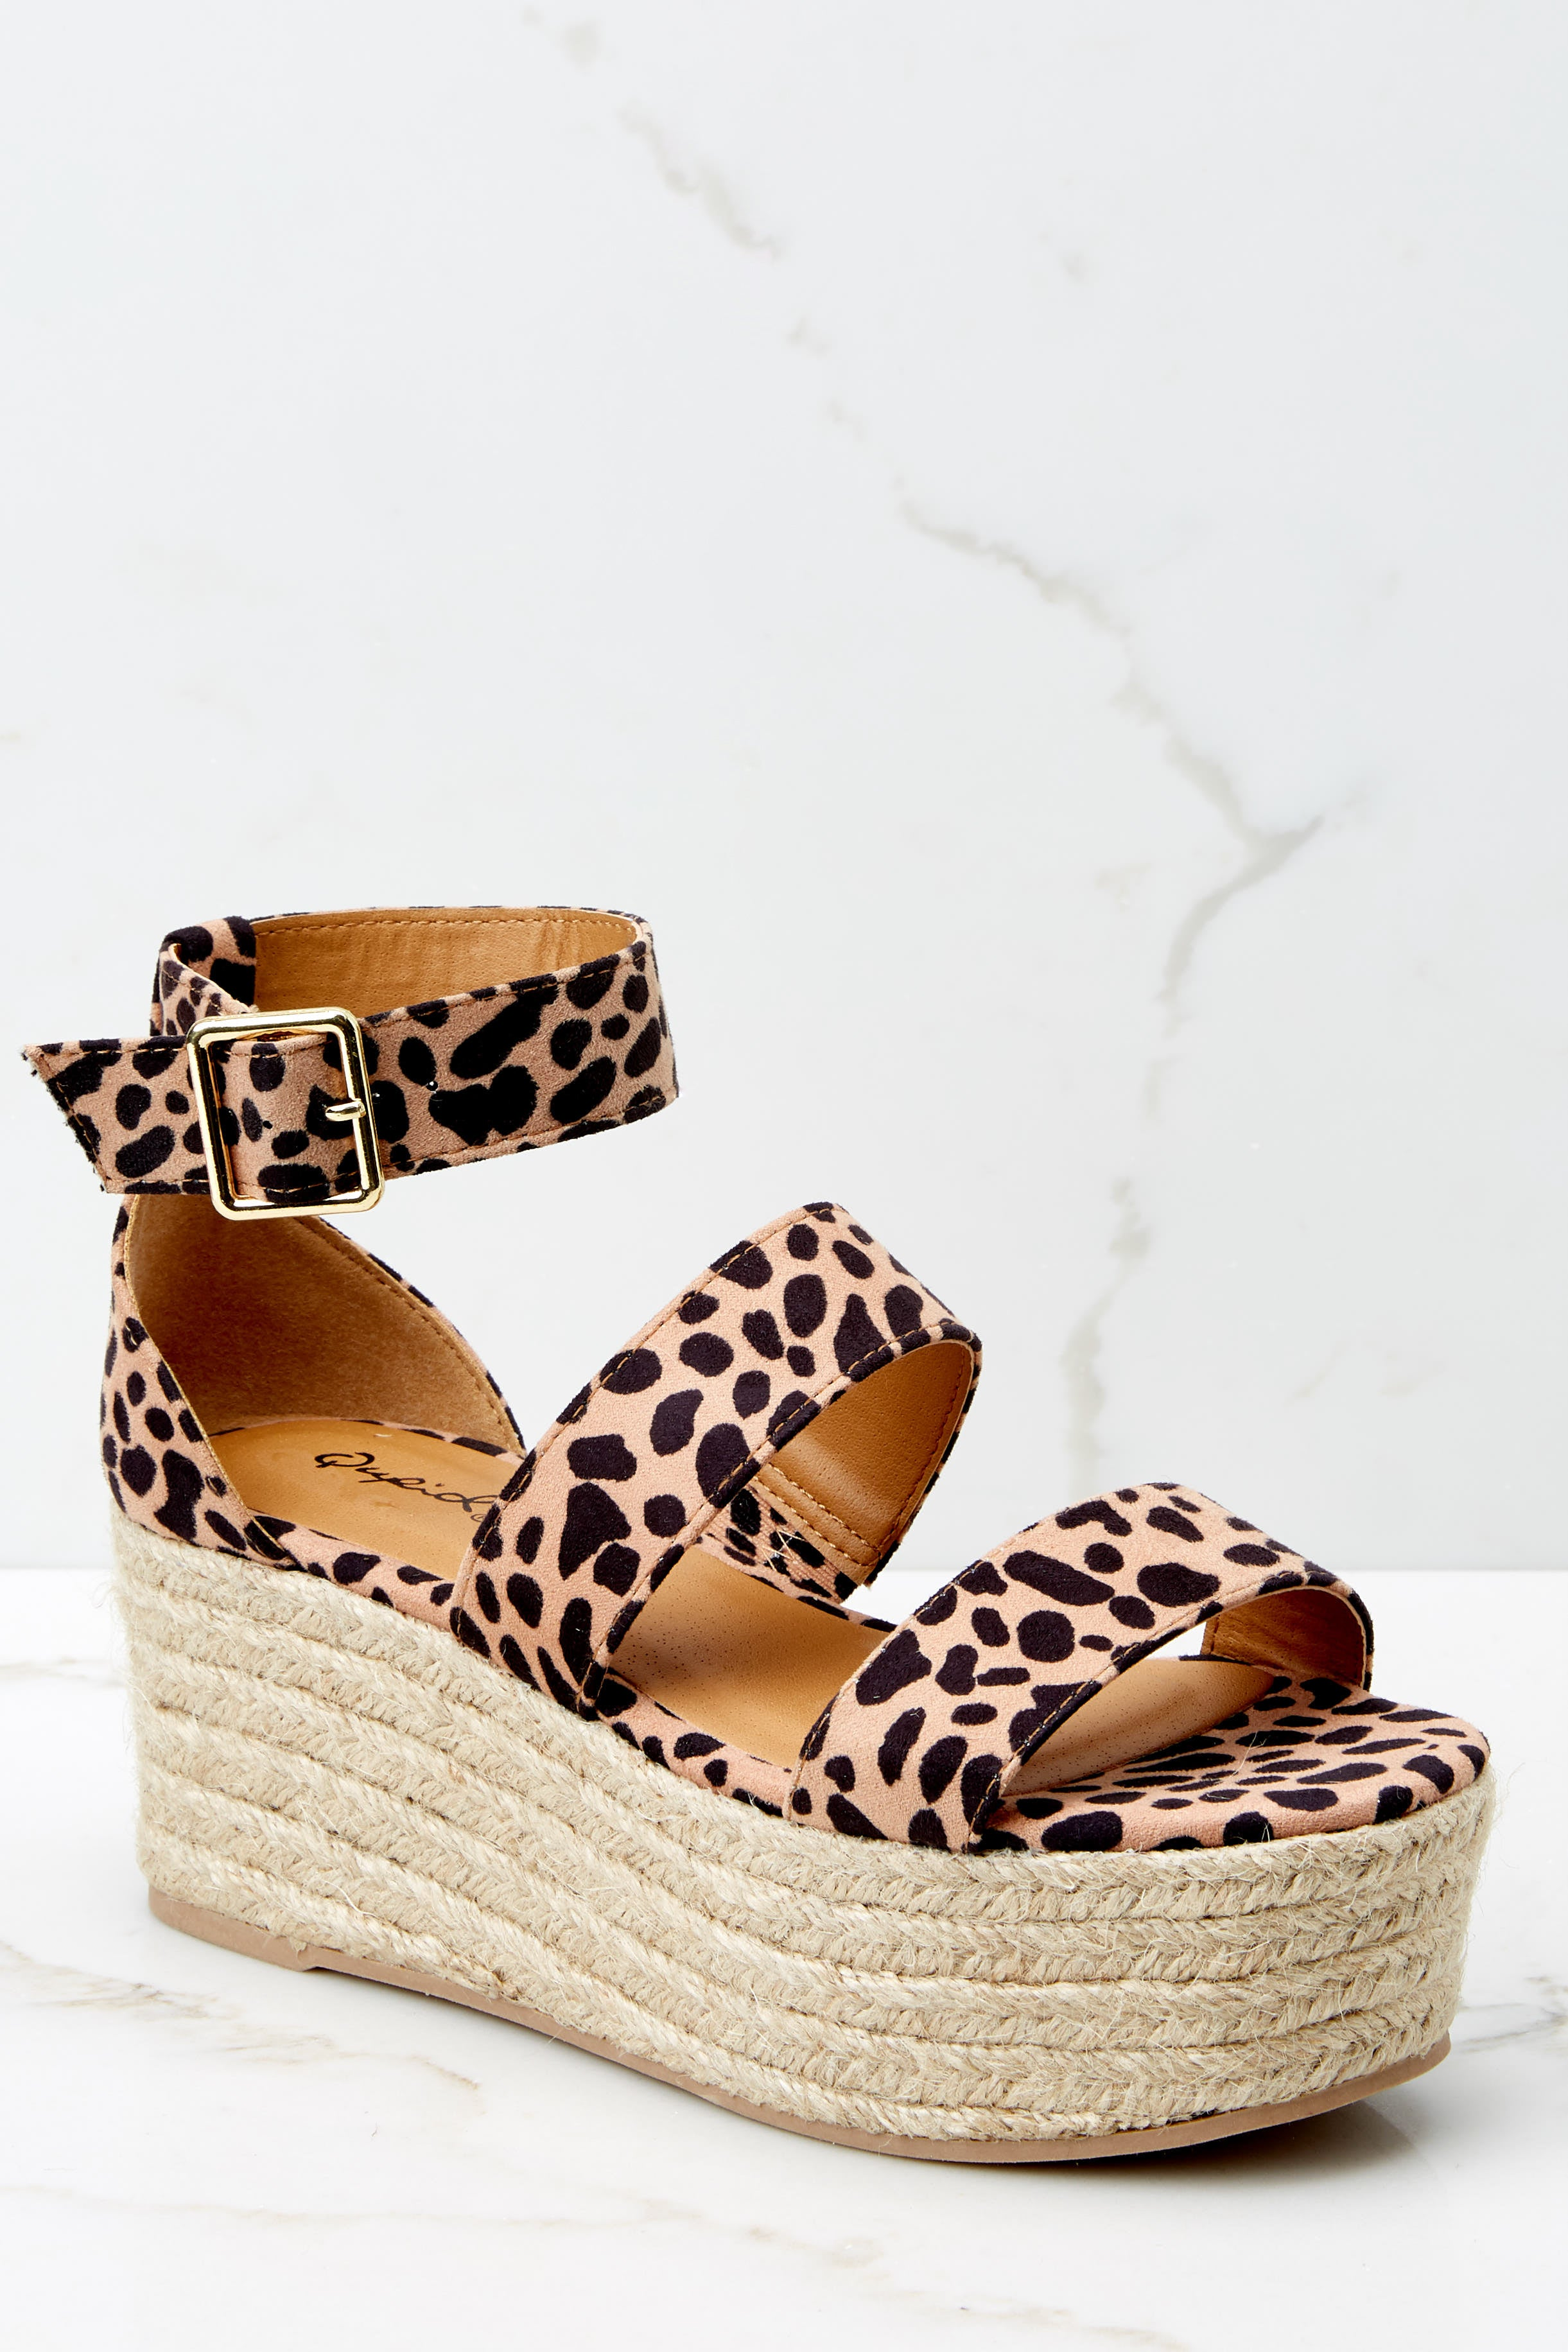 1 Fashionable Heights Cheetah Print Flatform Sandals at reddressboutique.com